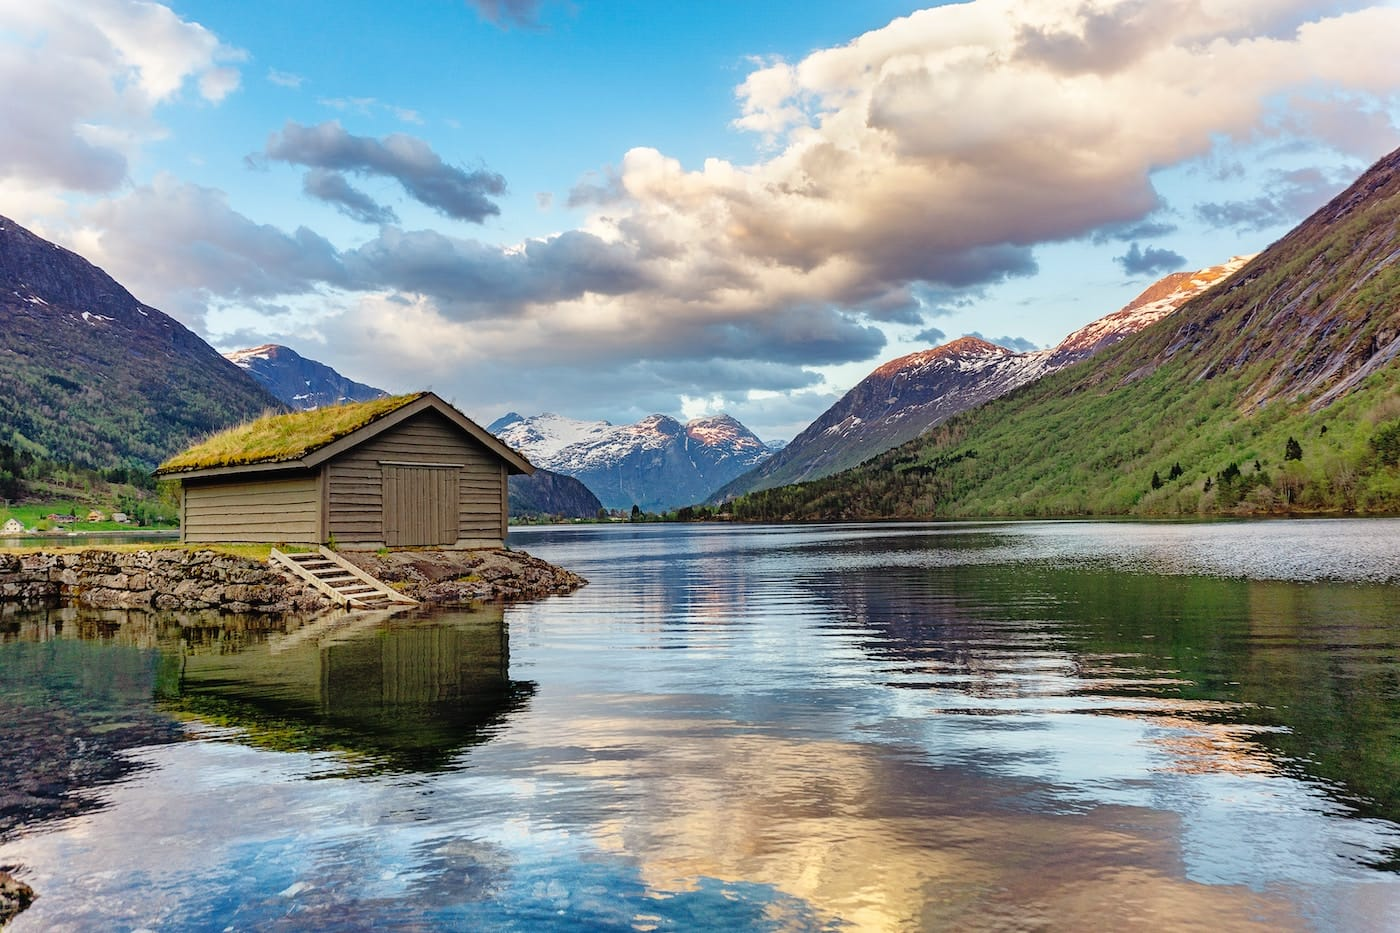 Top 16 Best Hiking & Trekking Tours in Norway